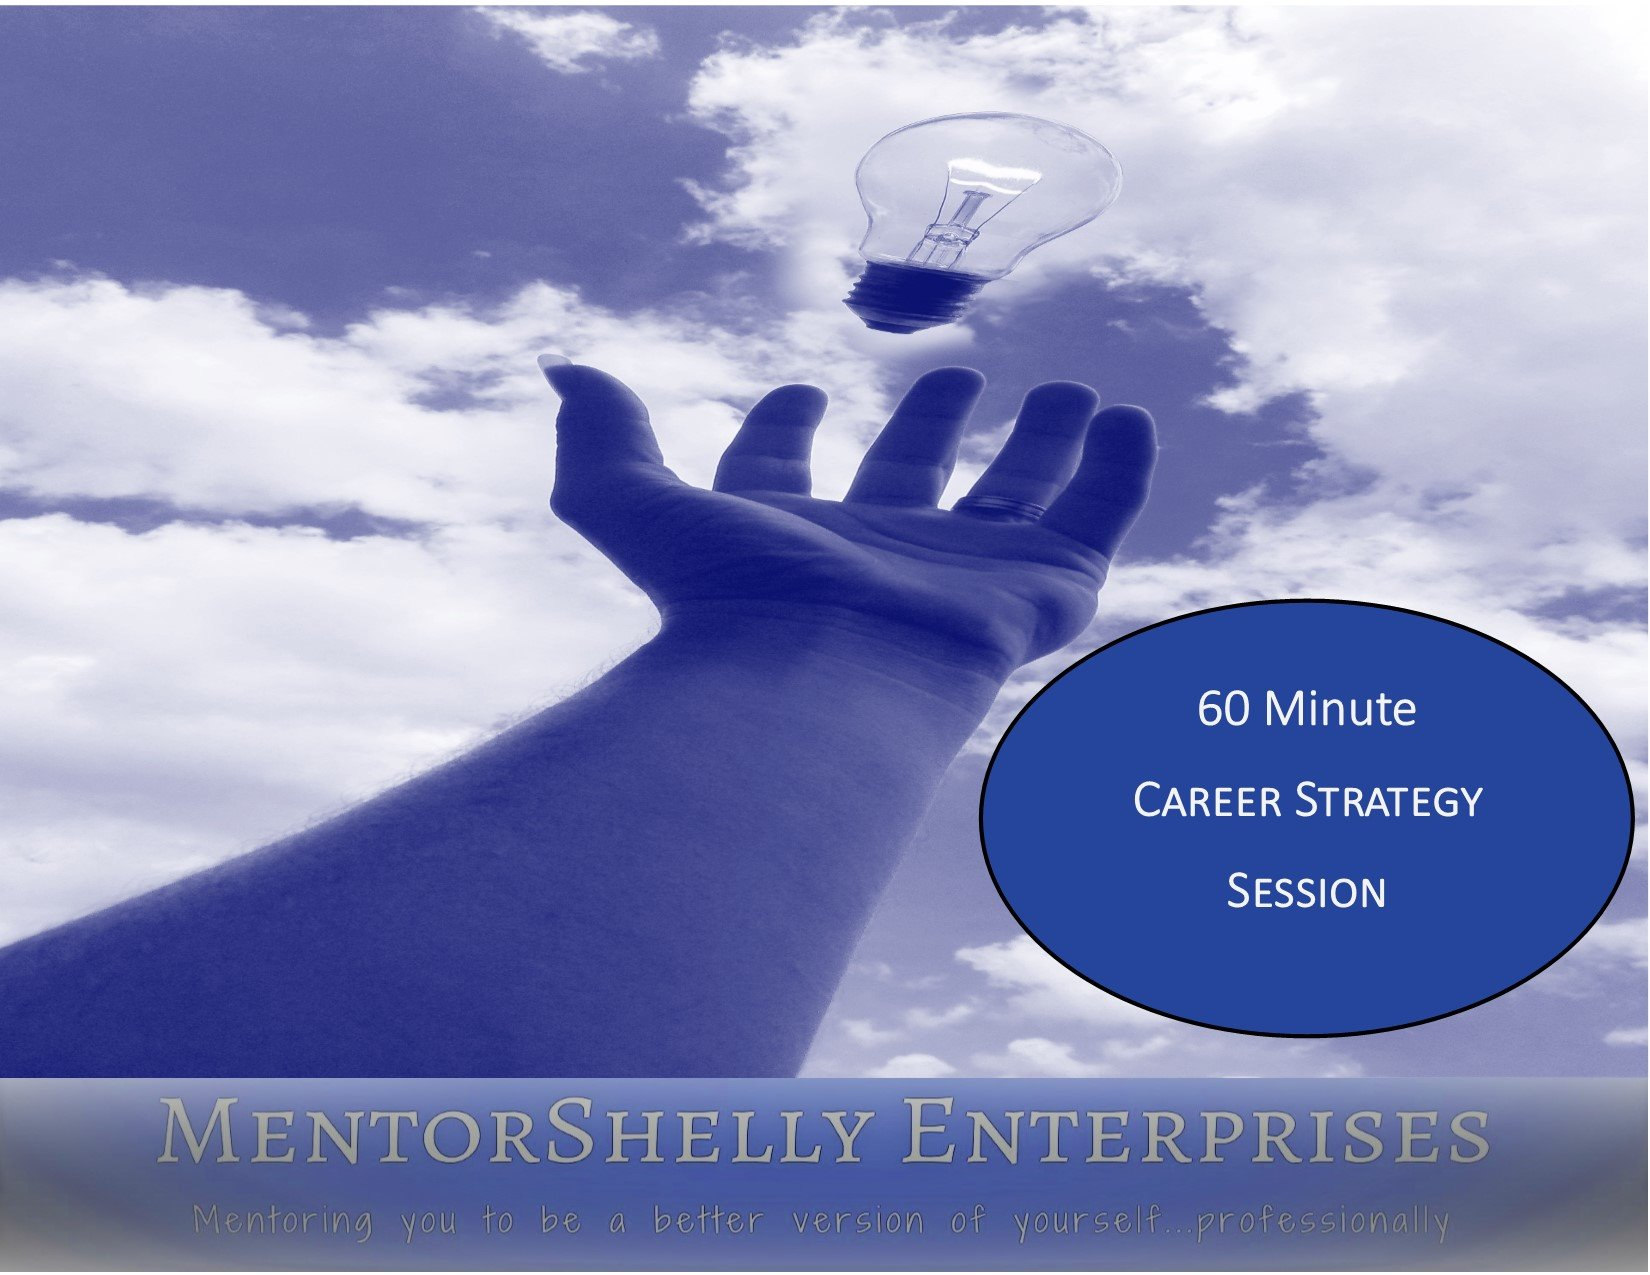 Career Strategy Session - 60 Minutes